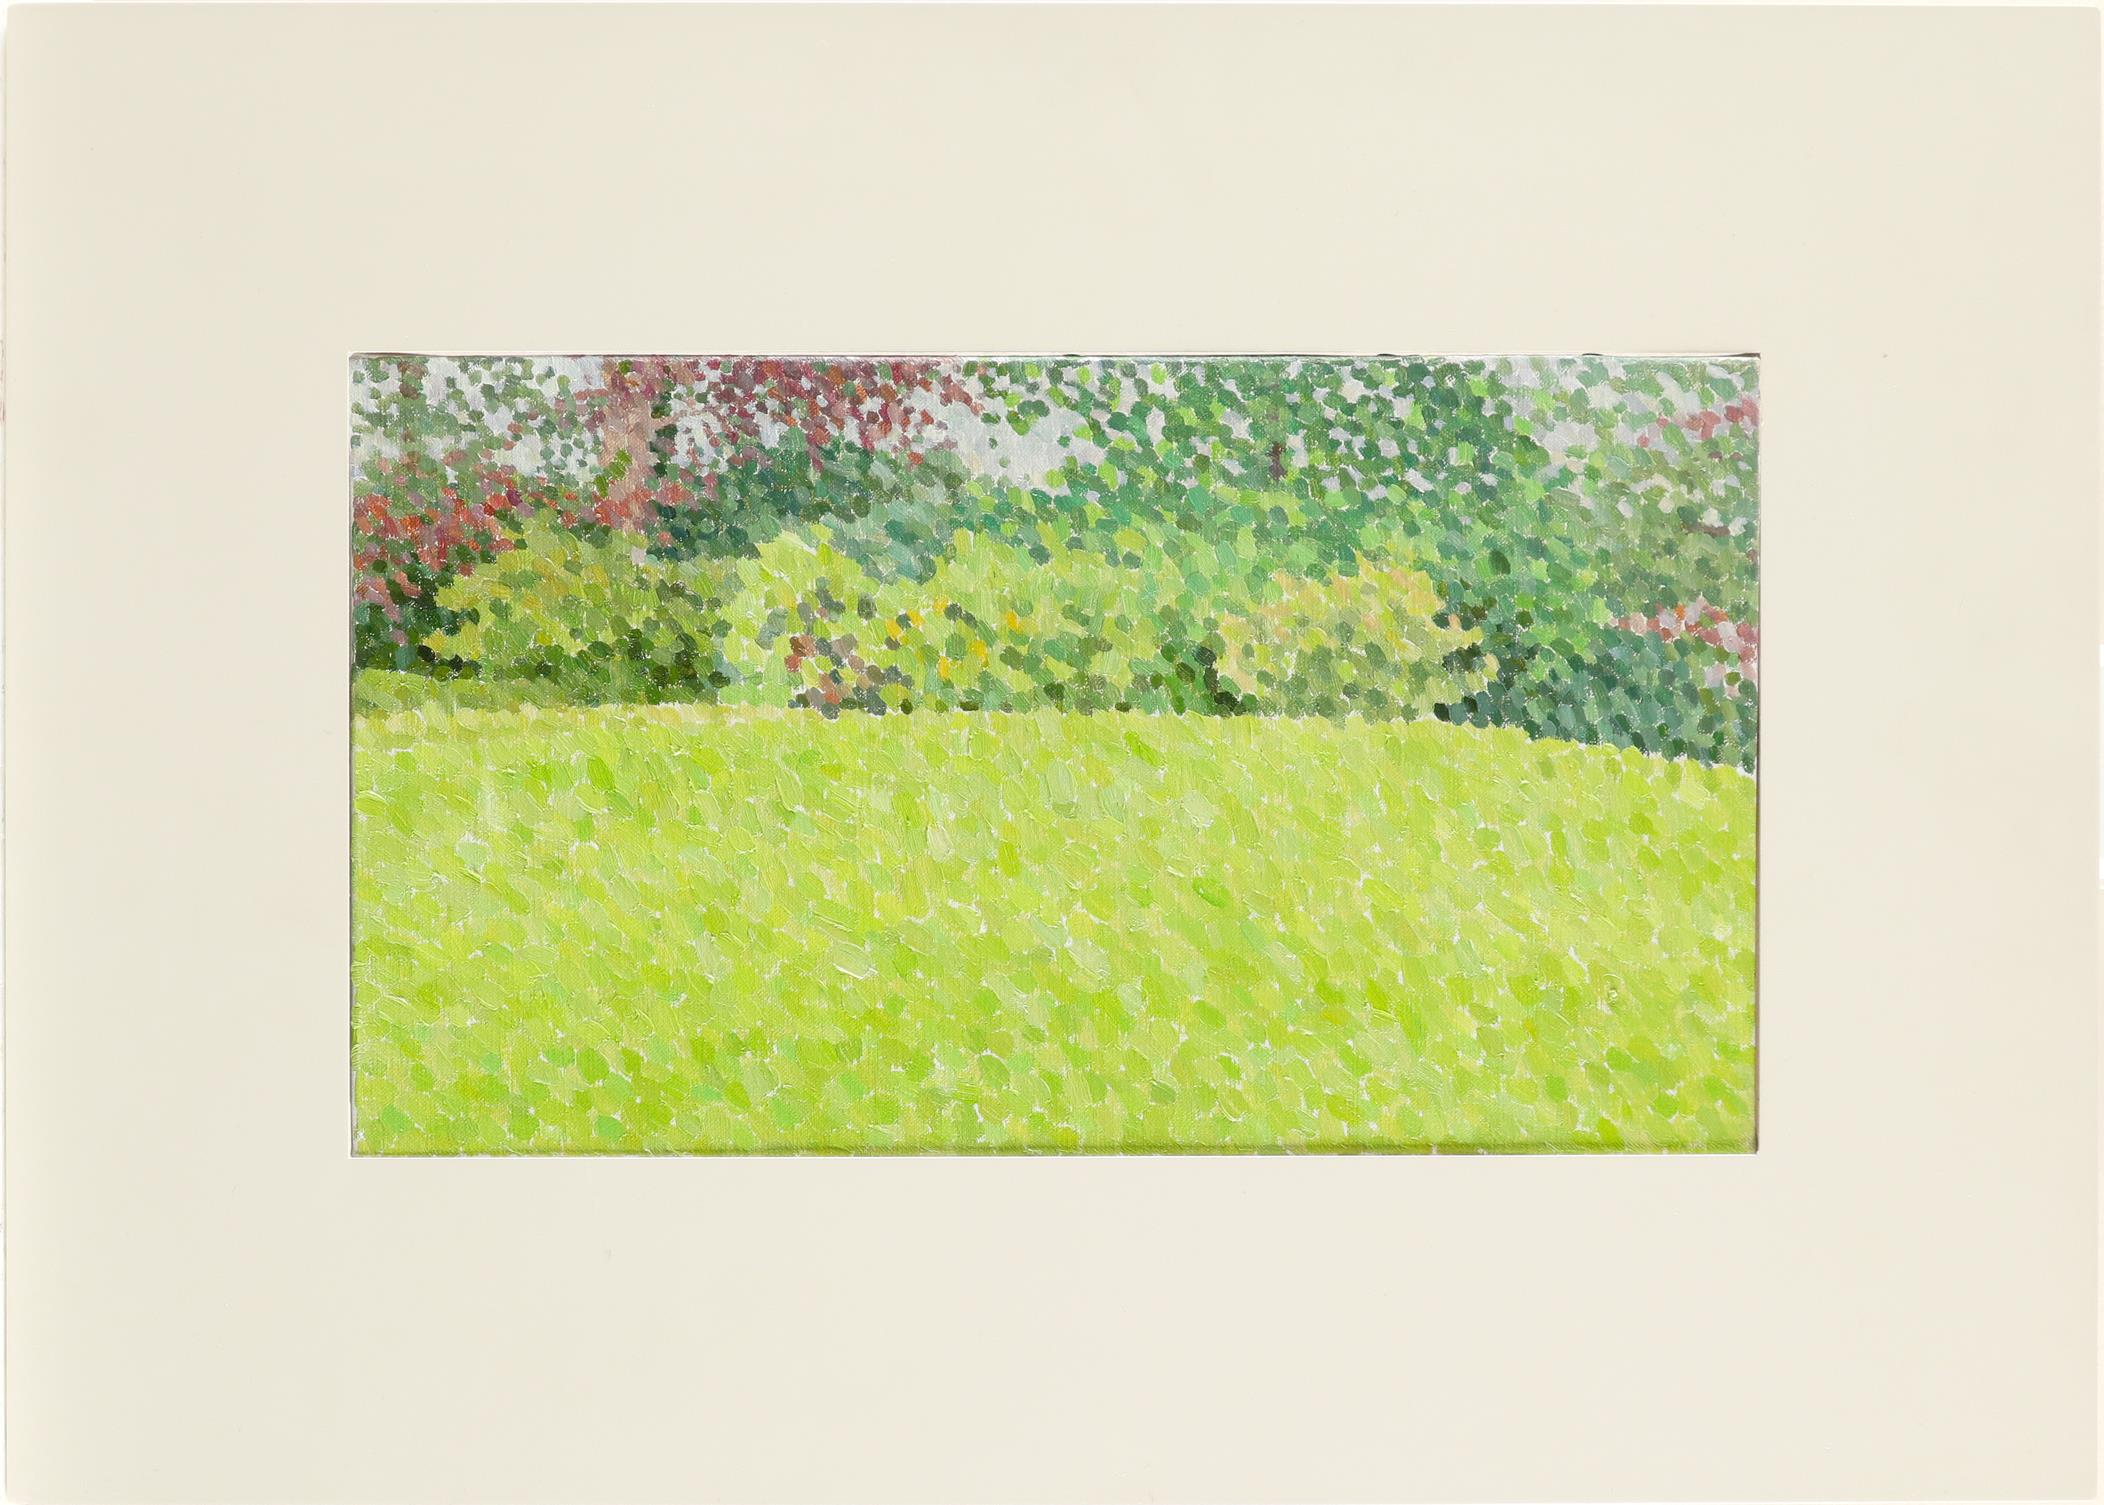 ‡William Powell Wilkins CBE (b.1938) Rain: The Edge of the Lawn Signed with initials and dated WW ' - Image 2 of 3